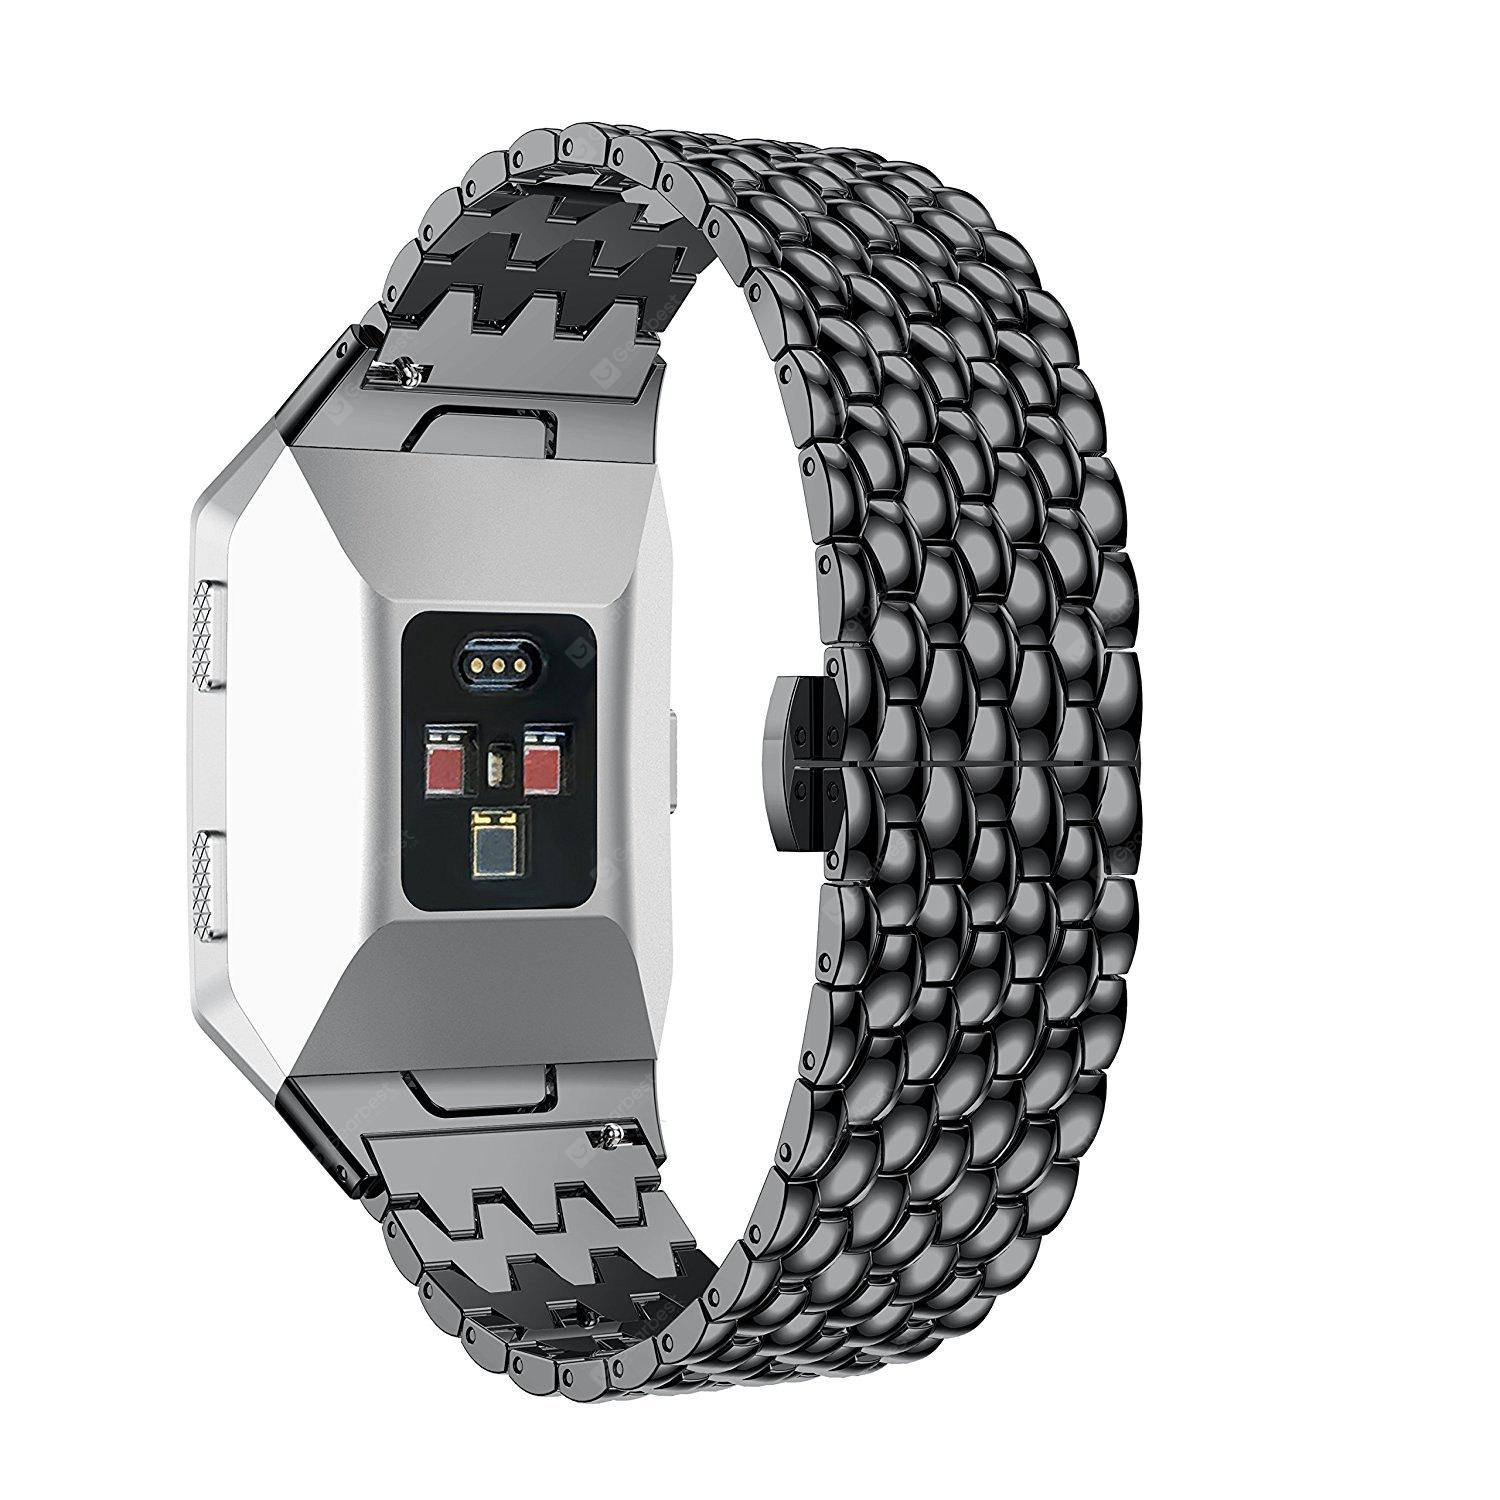 Stainless Steel Wristband Strap